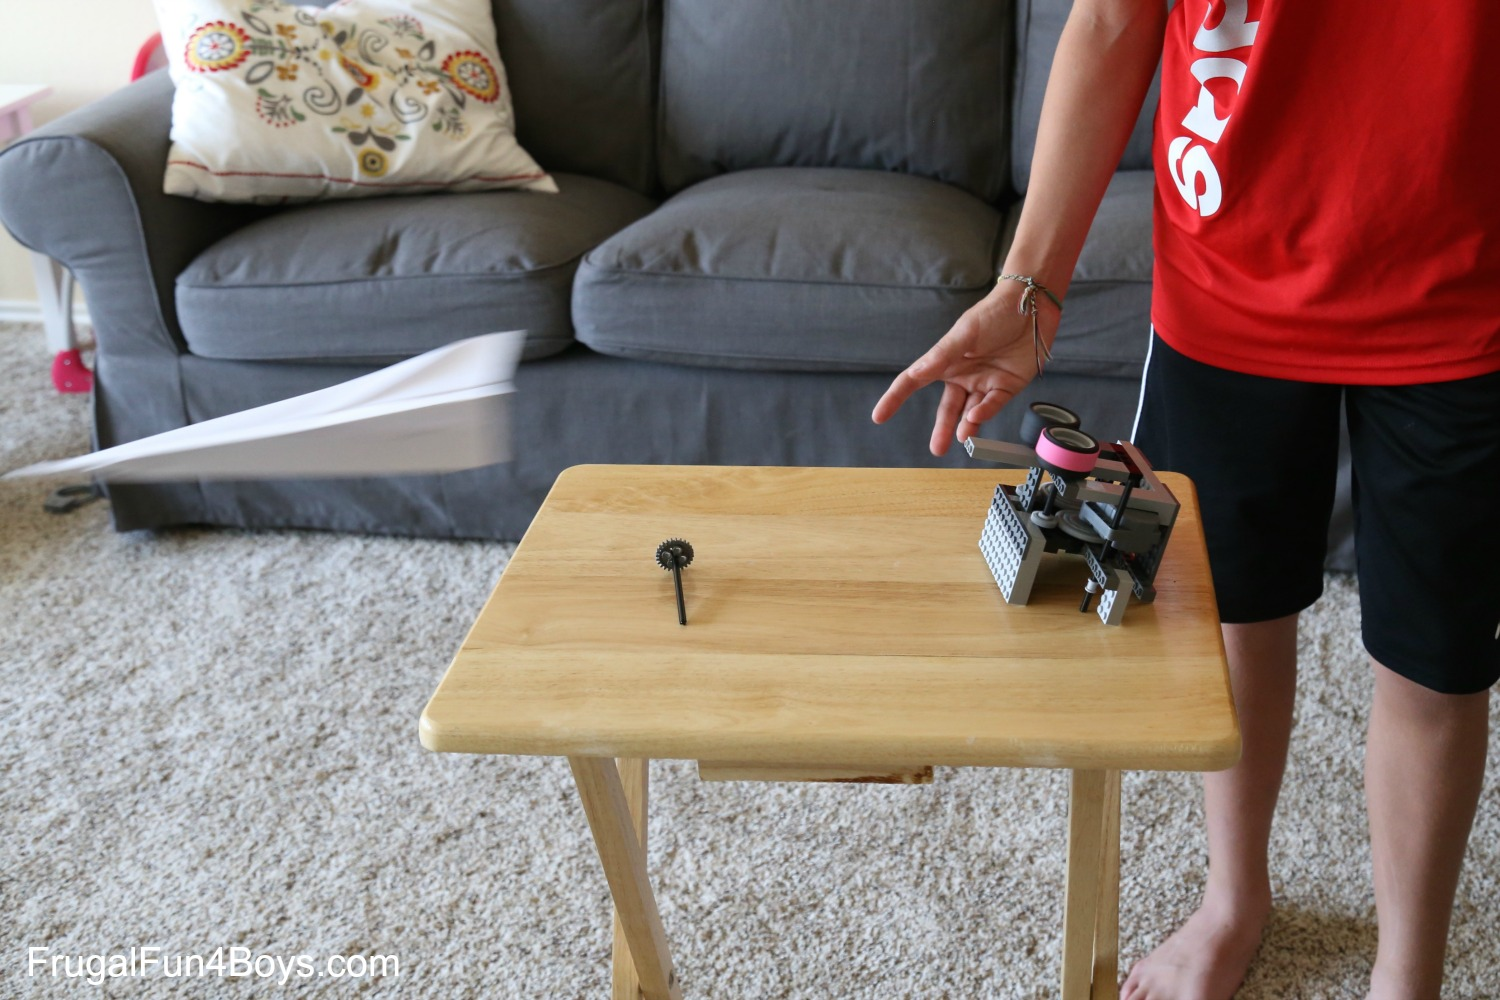 Two Ways to Build a LEGO Paper Airplane Launcher